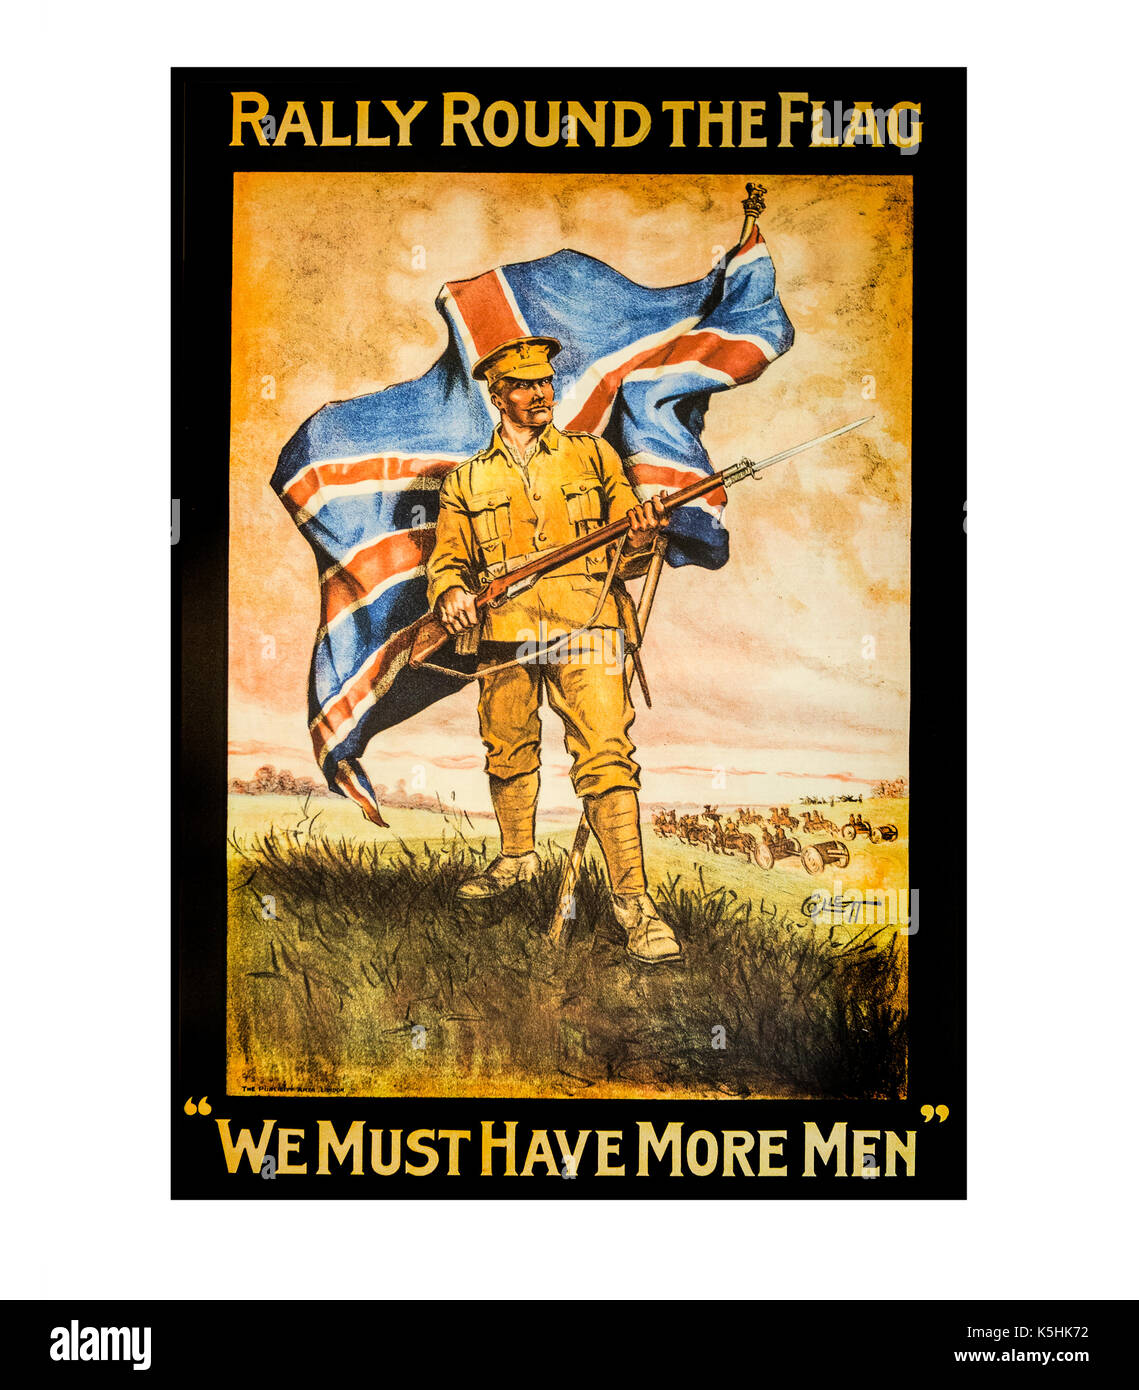 SWINDON, UK - SEPTEMBER 10, 2017: Rally round the flag. 'We must have more men' - 1915 recruitment poster - Stock Image